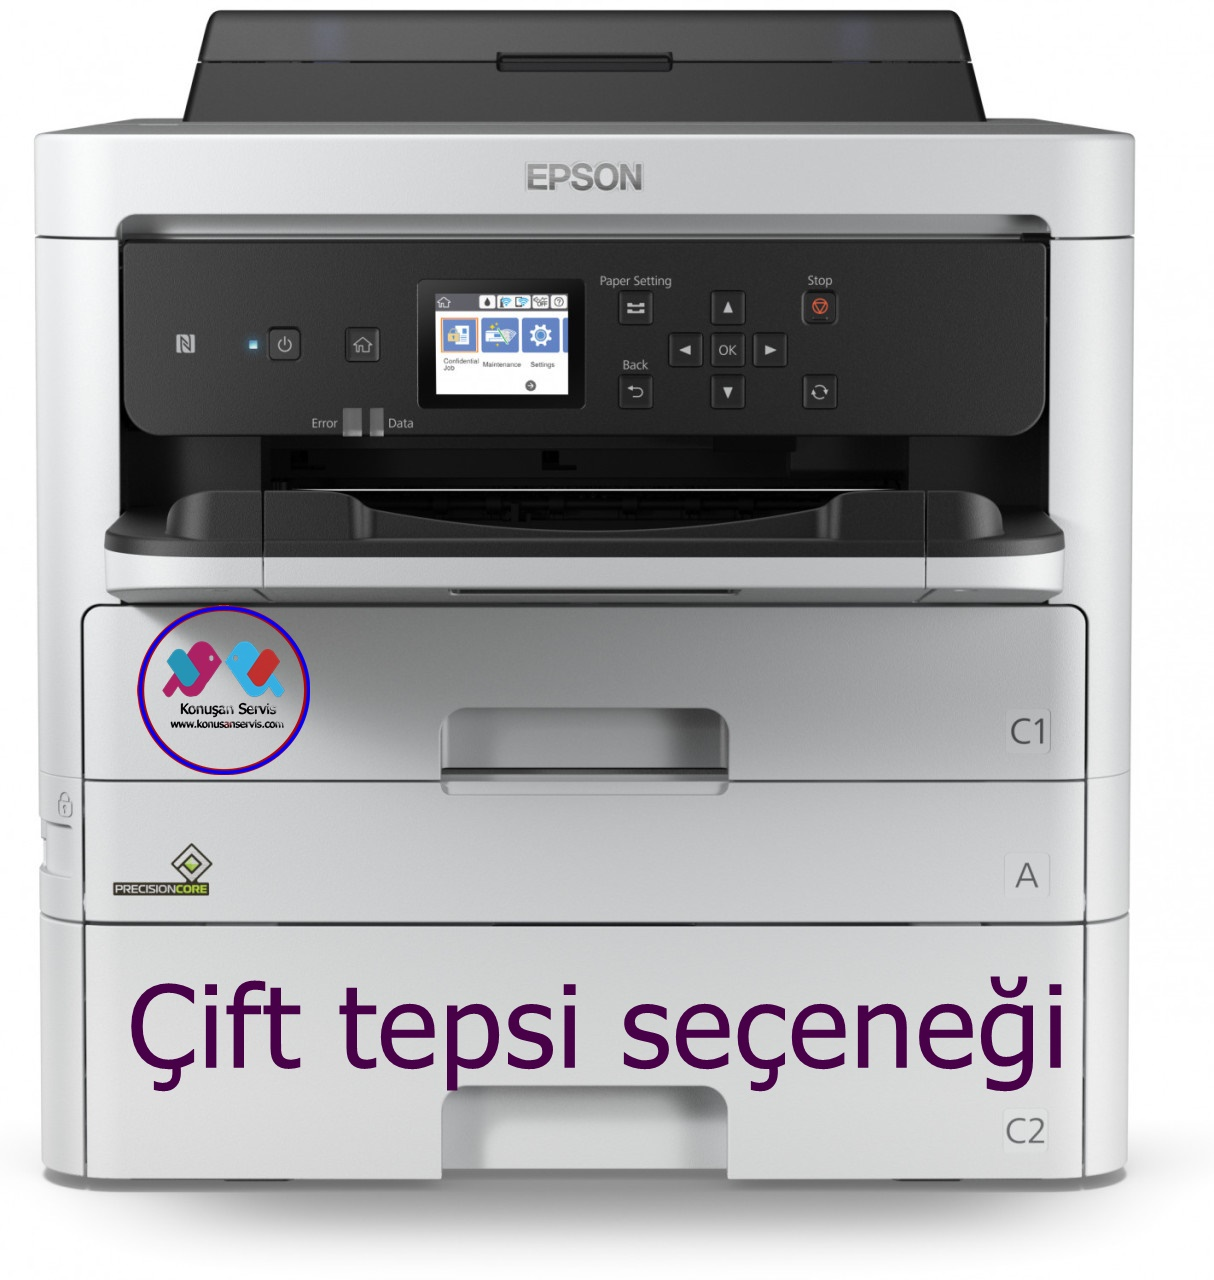 Epson WorkForce Pro WF-C5210DW-konusanservis-1280x1134